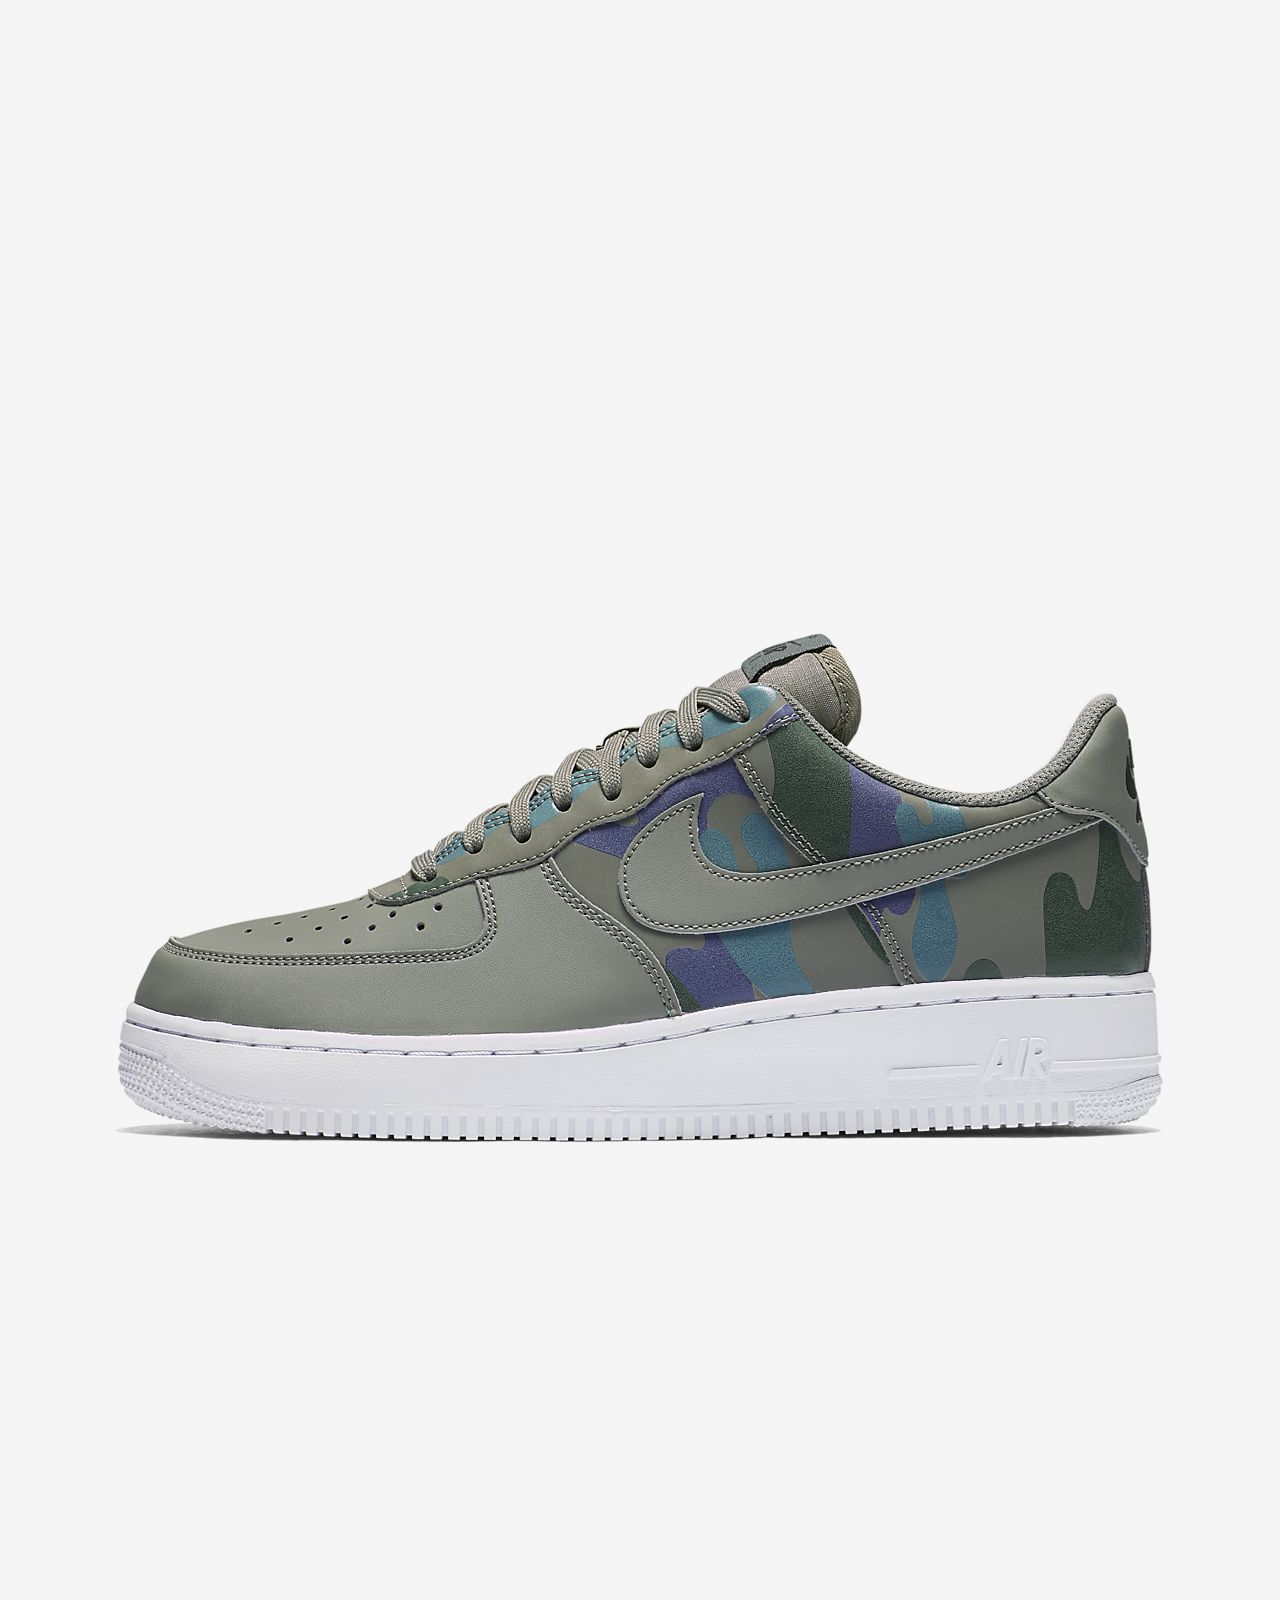 a7e6c7a317675 Image result for nike air force 1 07 low camo shoes | Nike Air Force ...